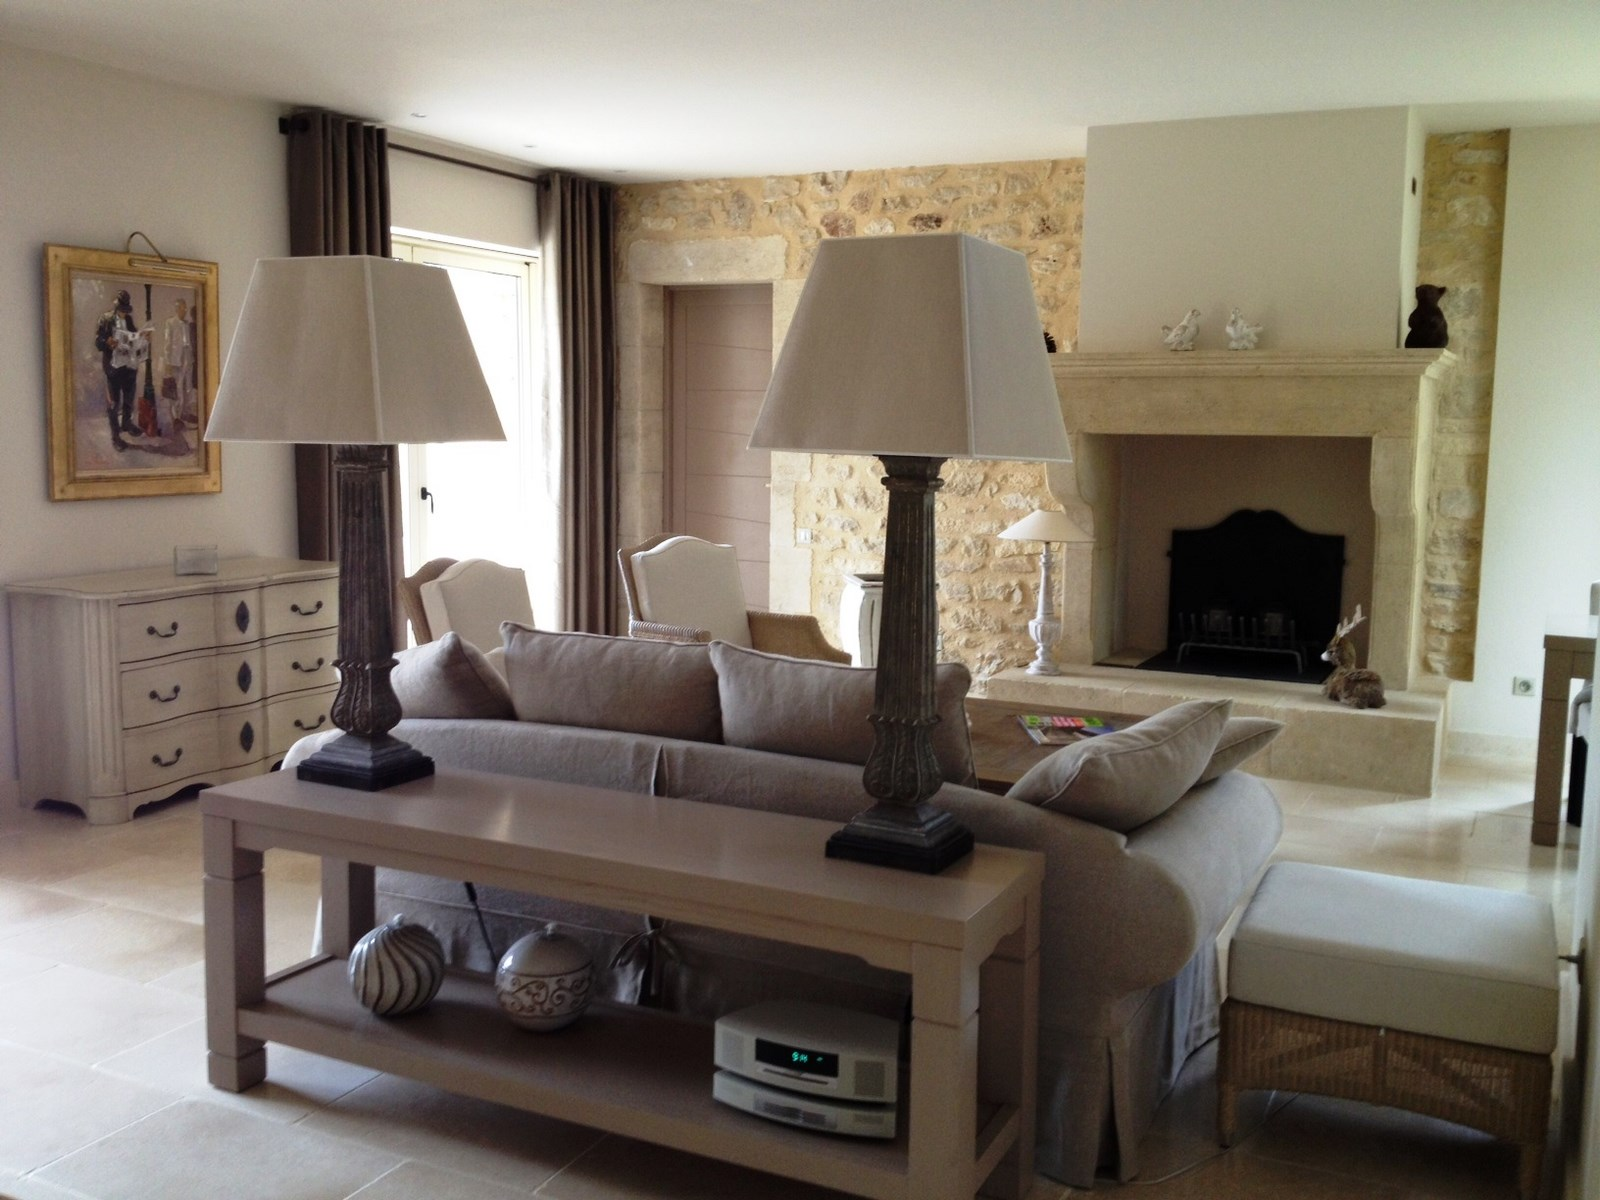 maison contemporaine lacoste luberon villa de prestige en pierre avec vue sur le luberon ventes. Black Bedroom Furniture Sets. Home Design Ideas